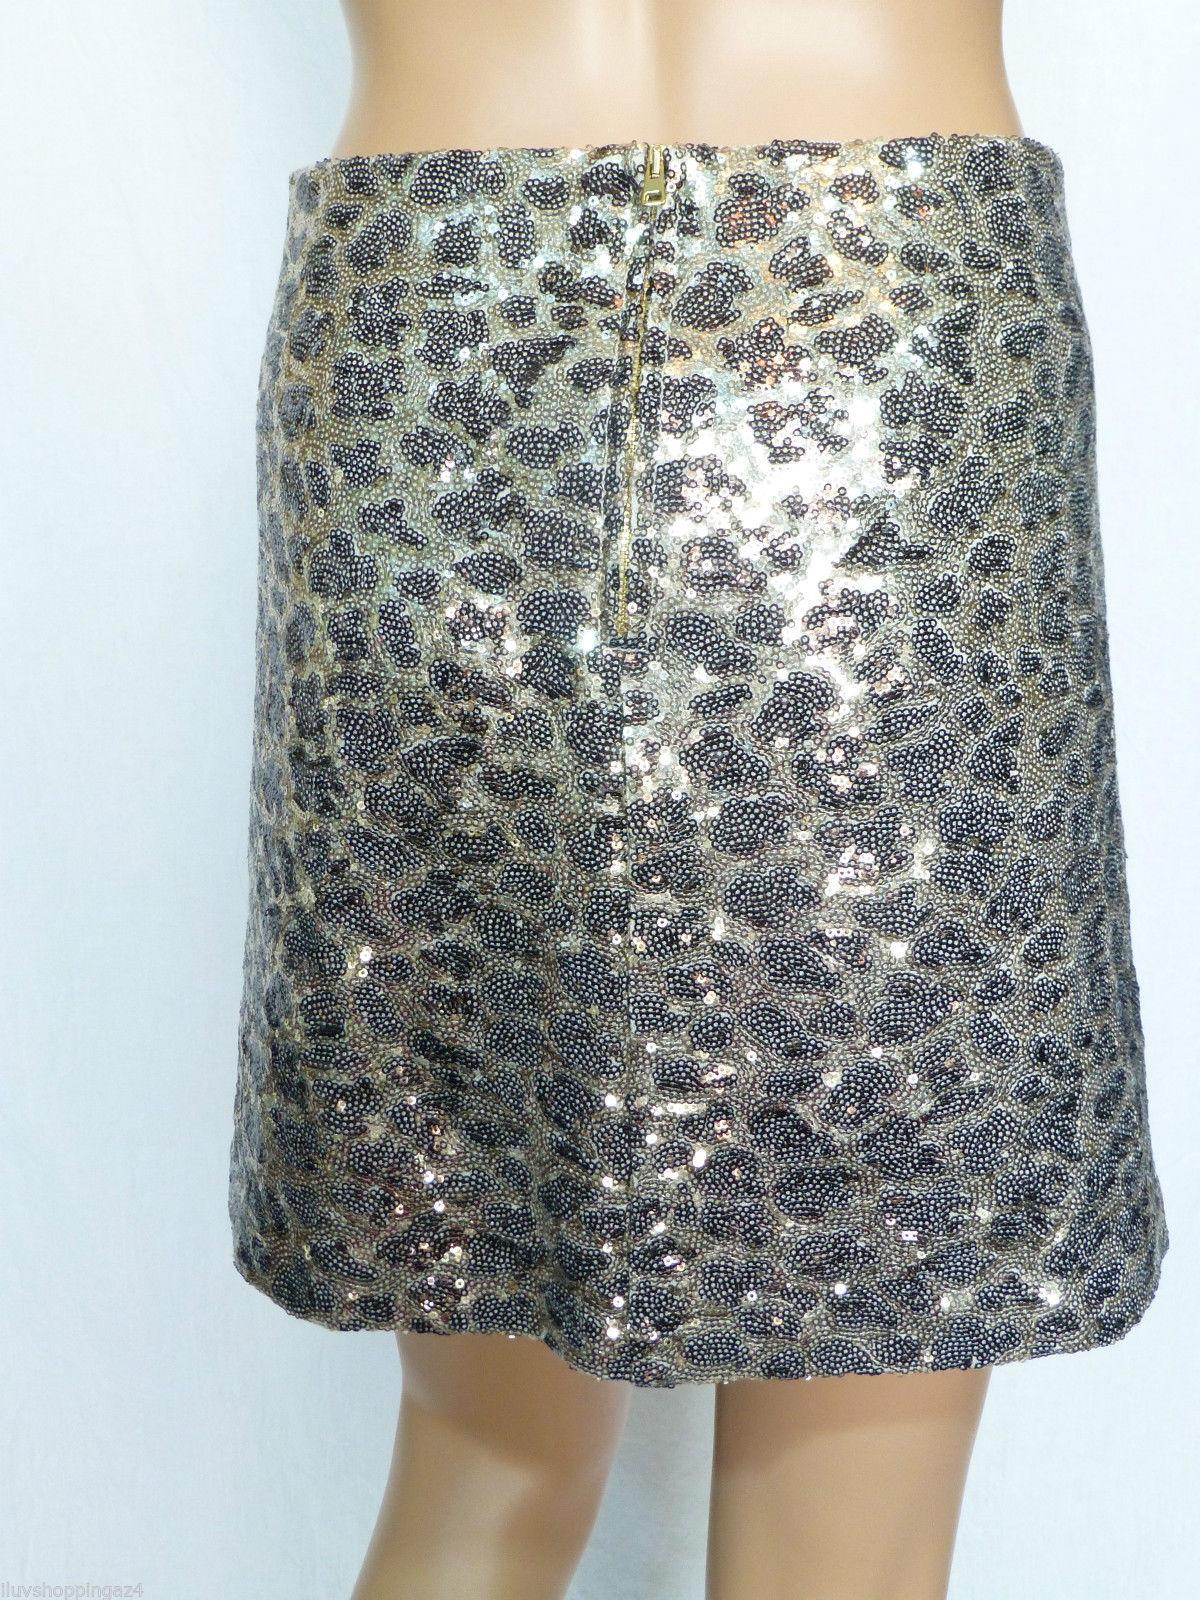 Love Moschino Leopard Print Sequin Mini Skirt - 48% Off Retail outlet